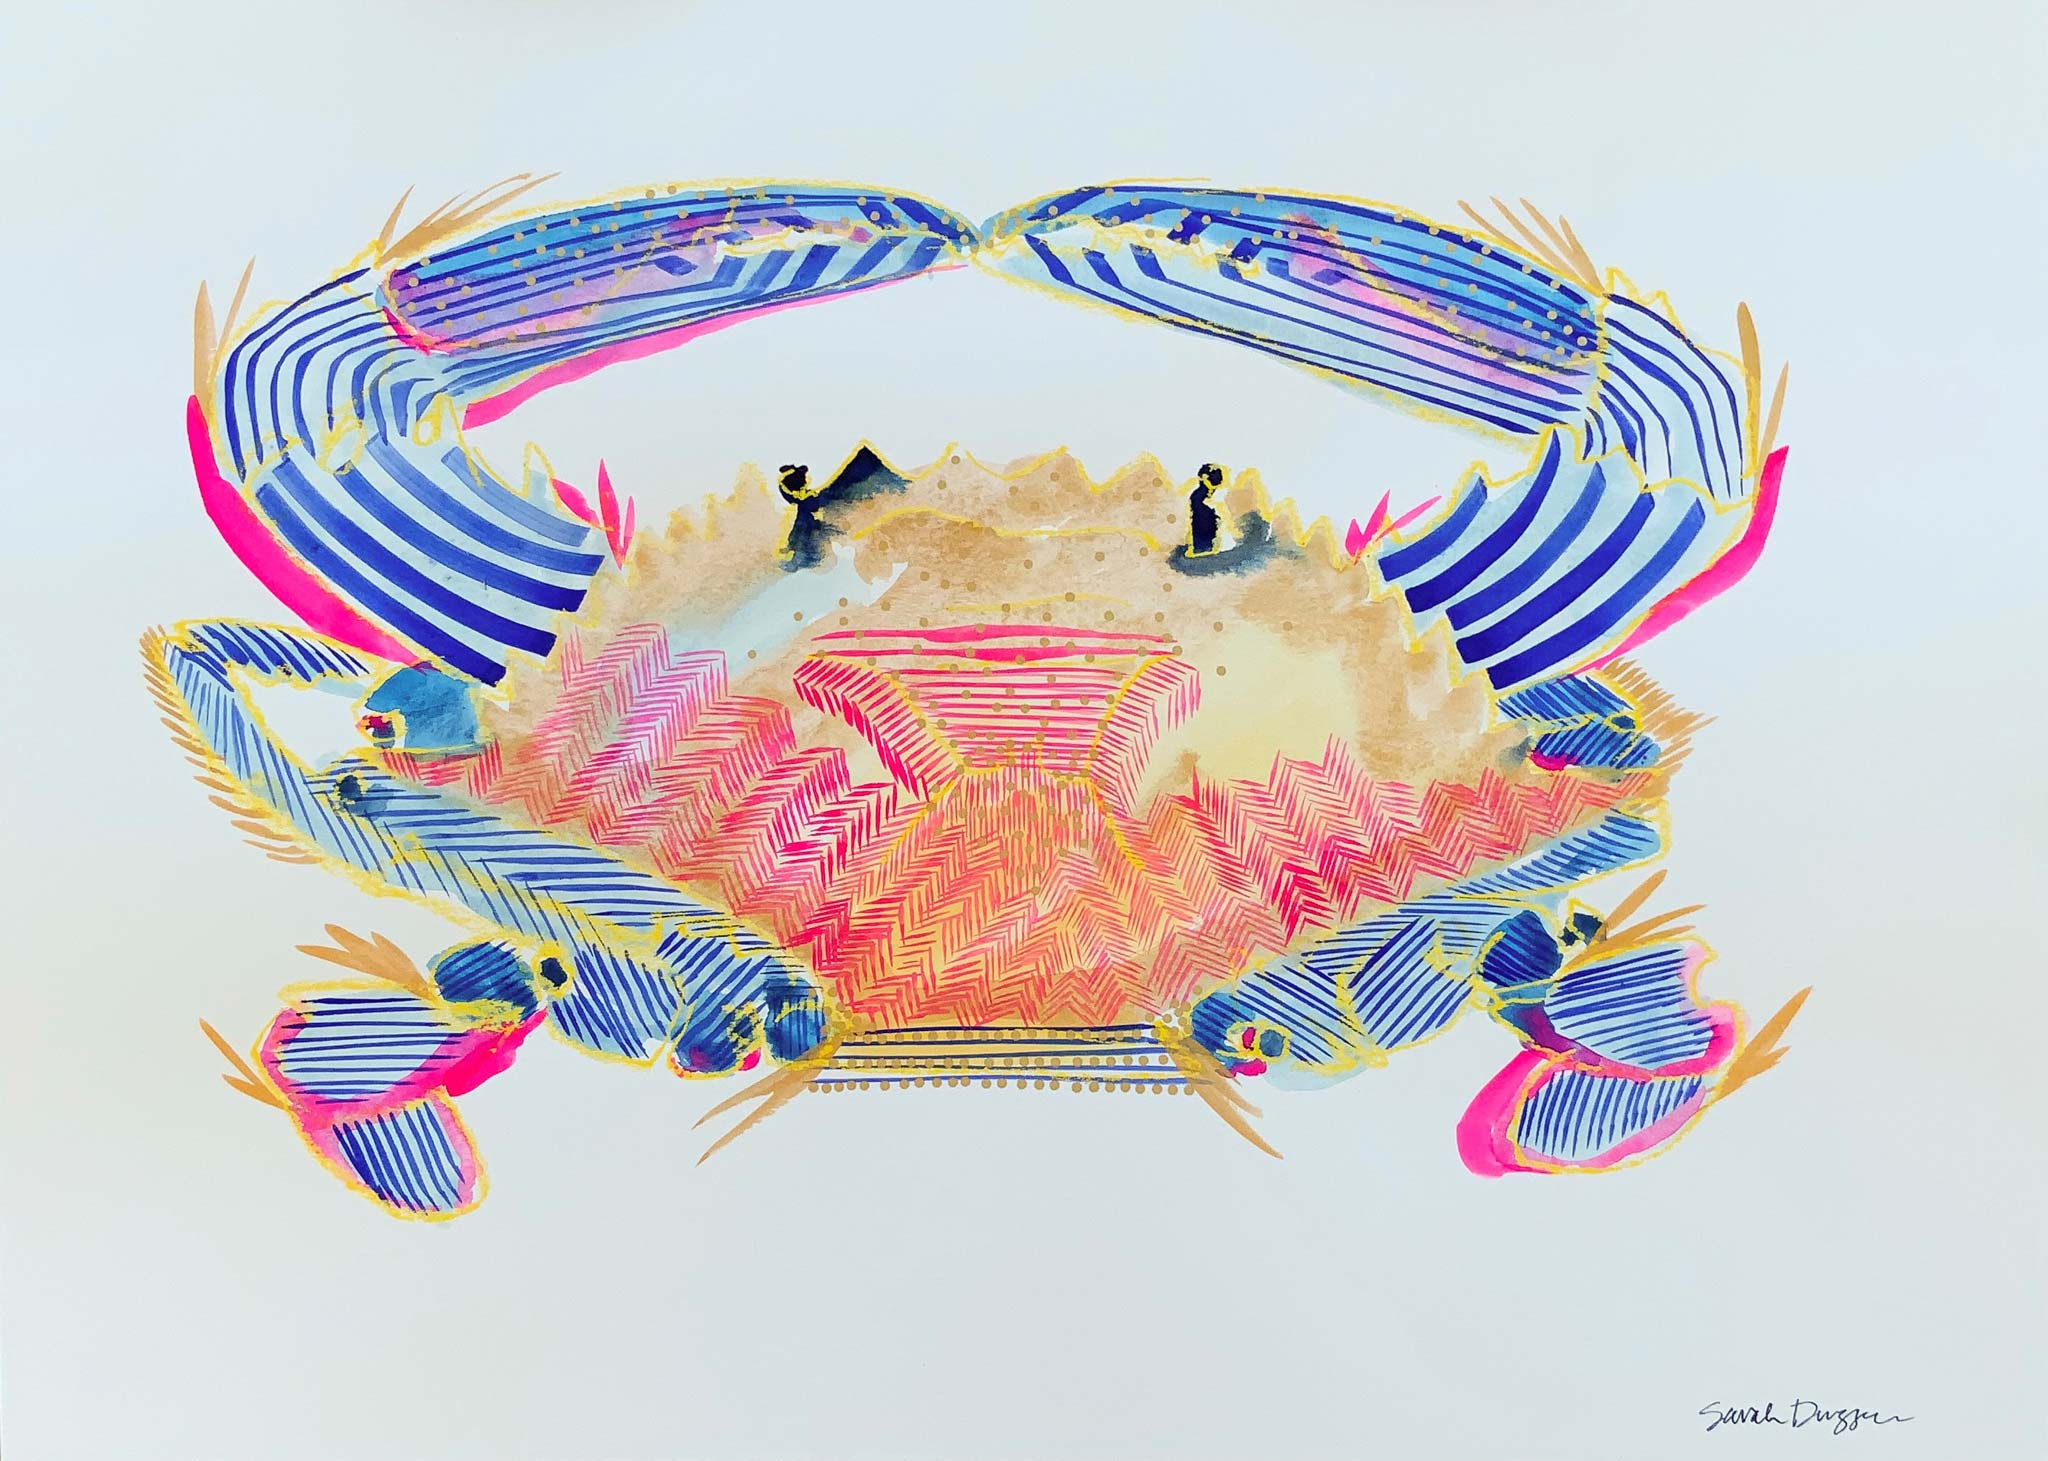 gouache, singular subject crab in pinks, blues, gold, white ground, bold lines, layered lines create form, graphic style